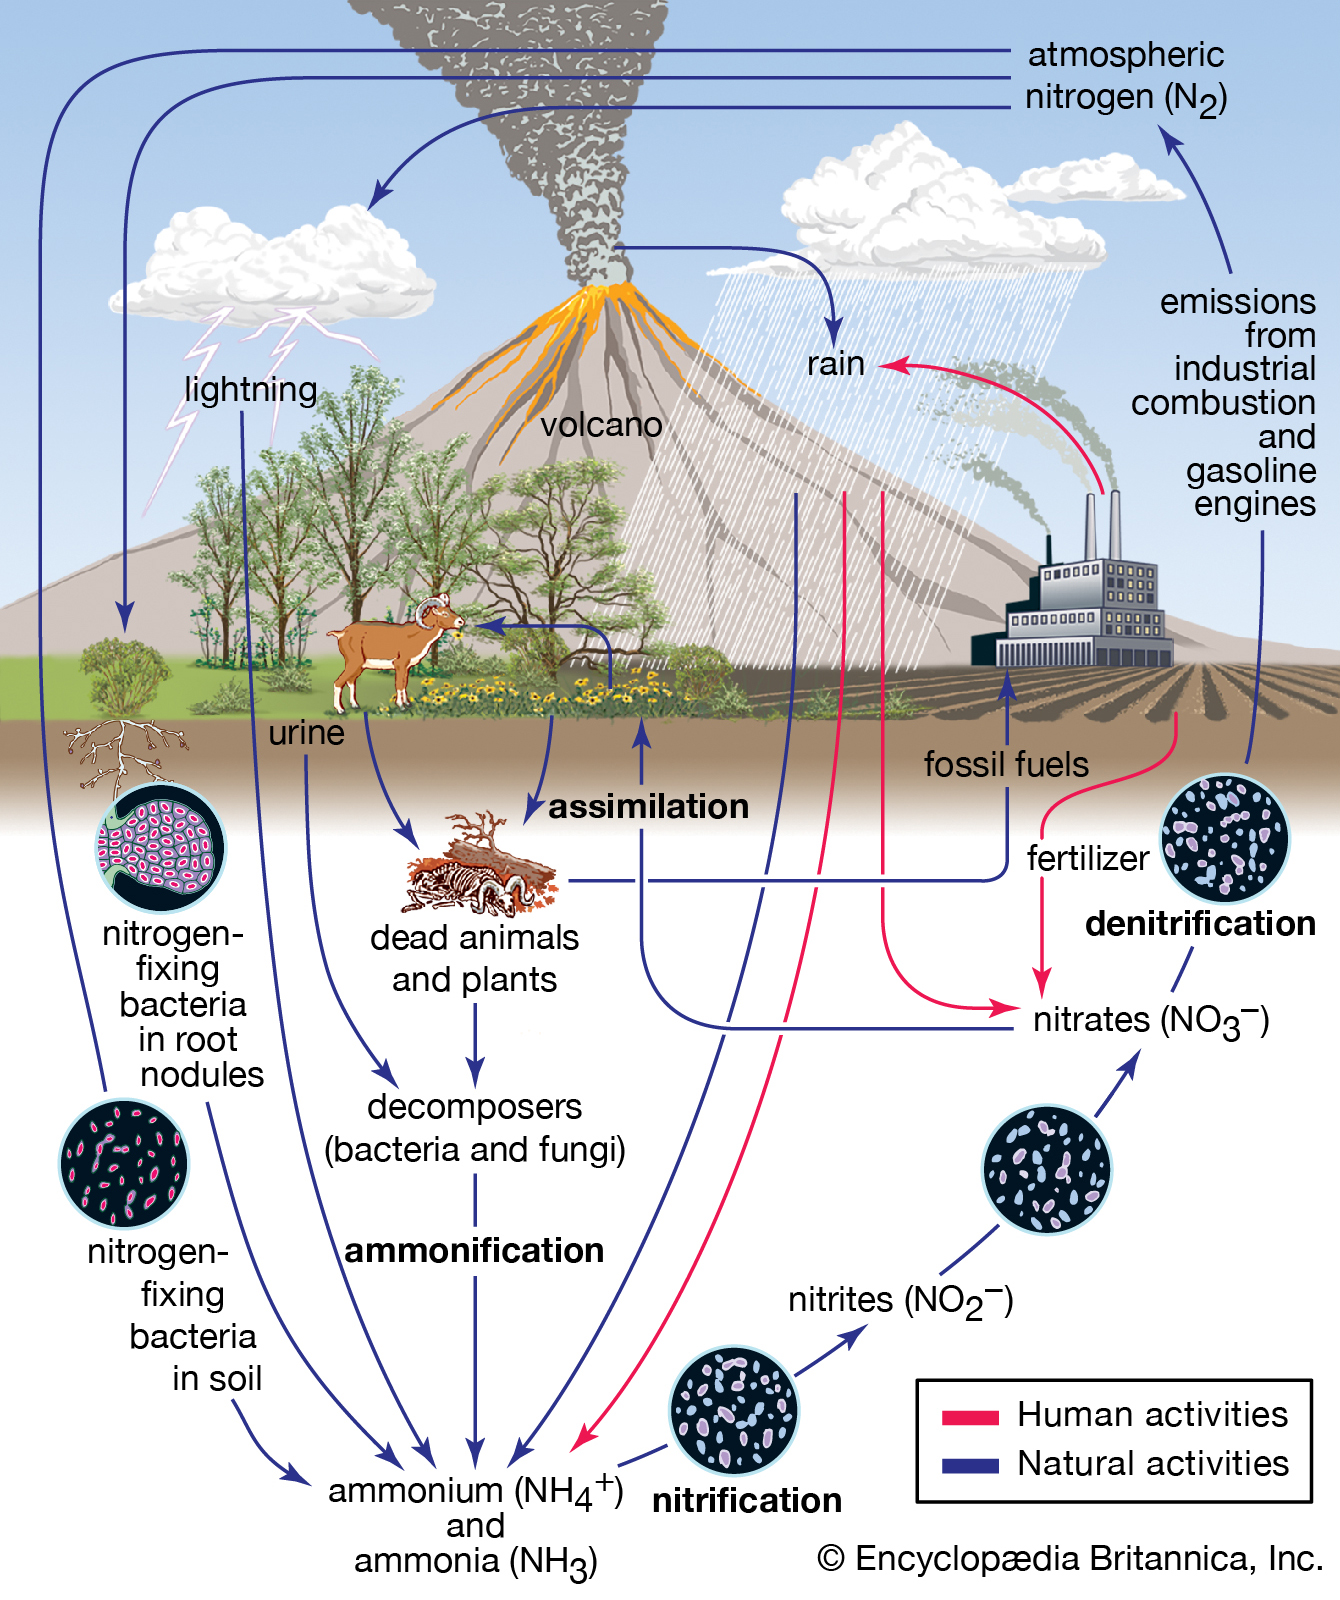 Newsela the biosphere and nutrient cycles overview of the nitrogen cycle image encyclopaedia britannica click to pooptronica Images